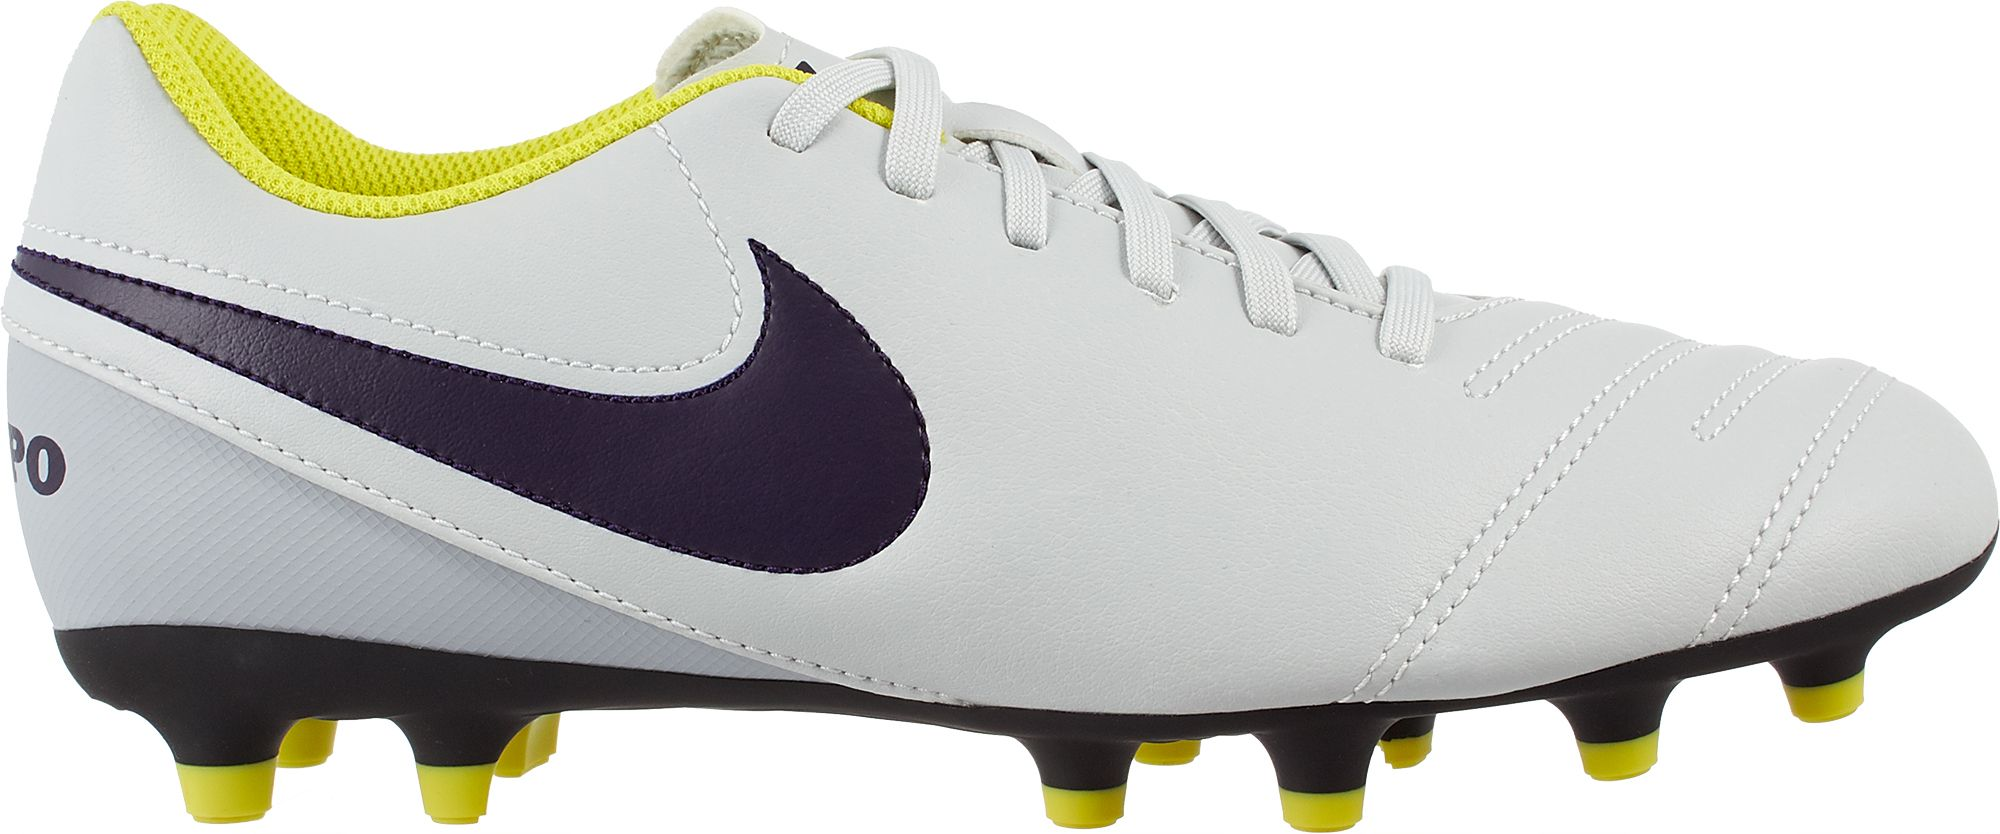 Nike Soccer Cleats & Shoes | DICK'S Sporting Goods